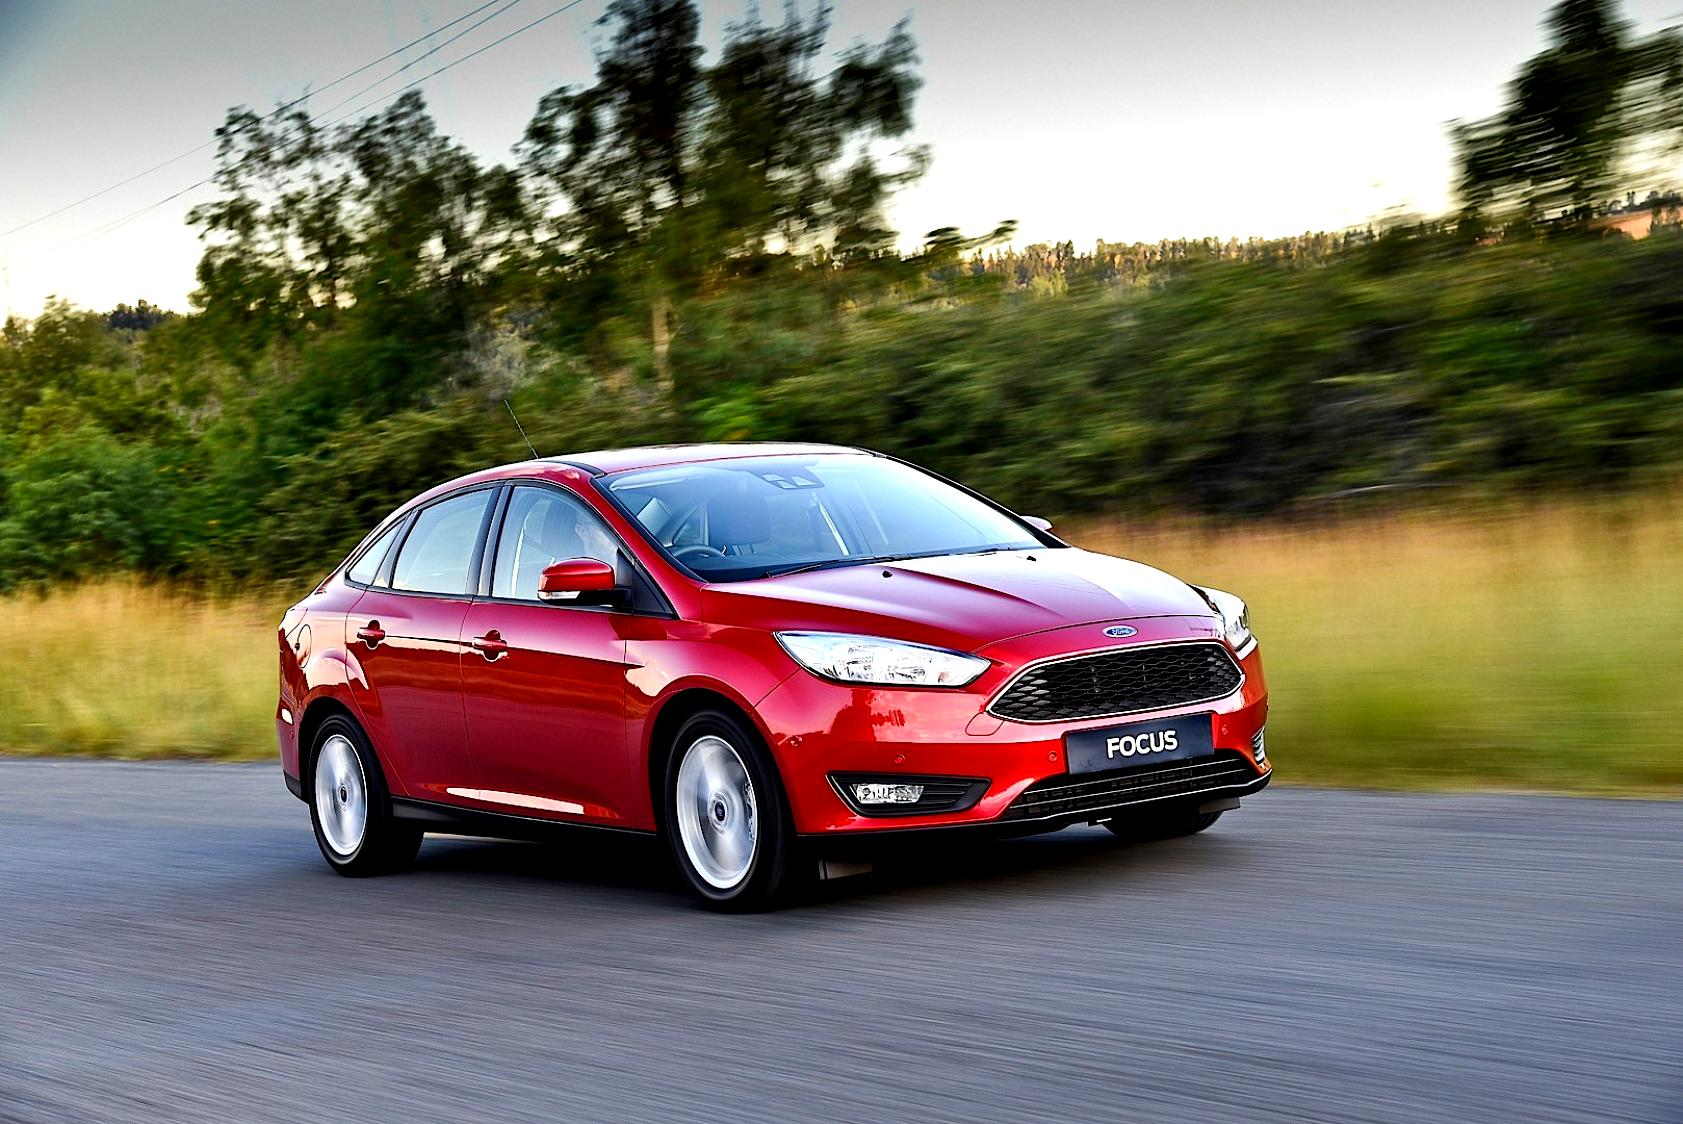 Ford Focus Sedan 2014 #53